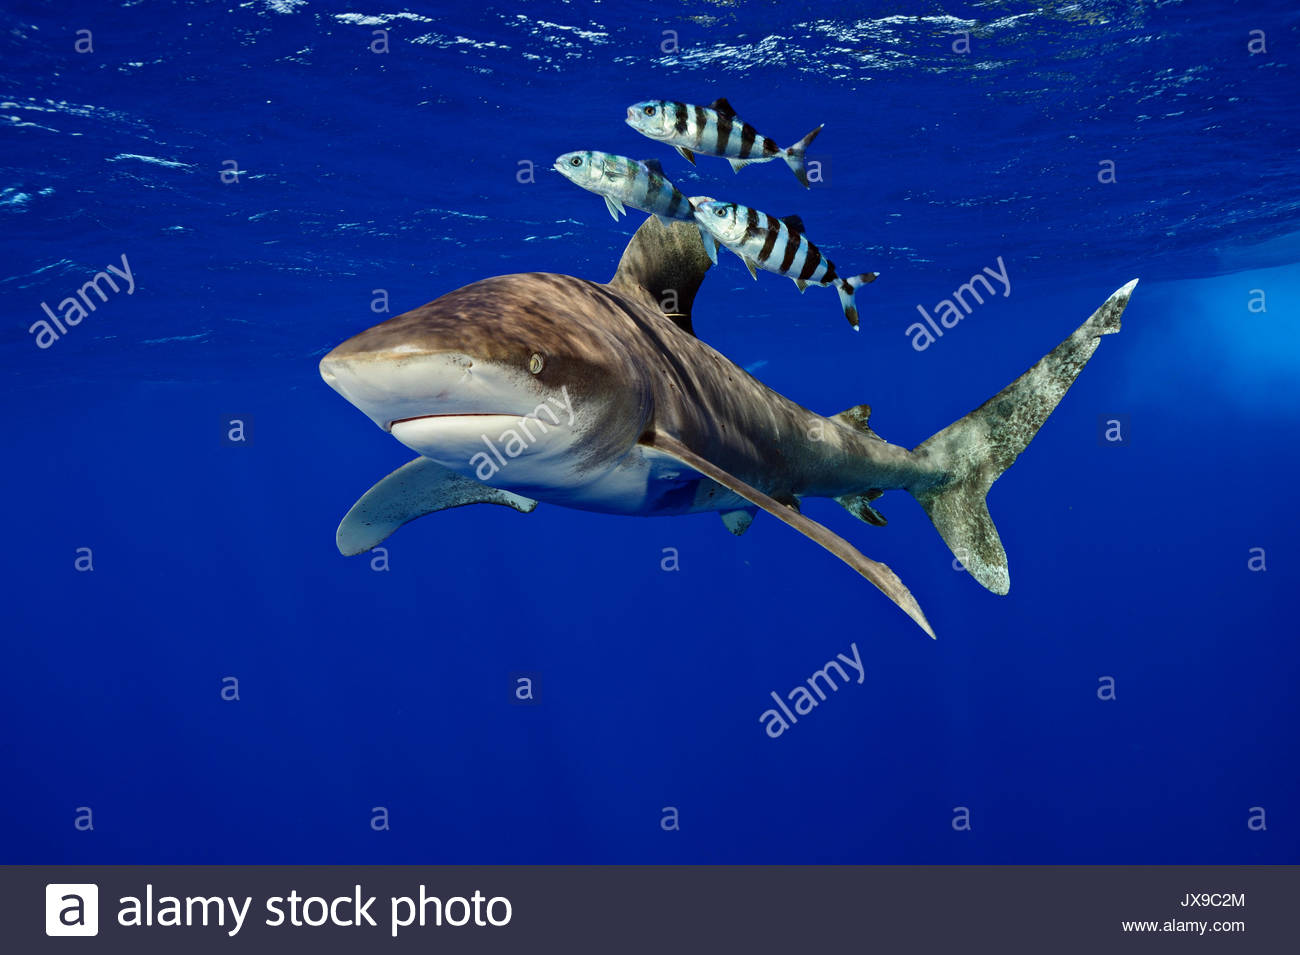 An oceanic whitetip shark, Carcharhinus longimanus, coexists with pilot fish in the waters off Cat Island in the Bahamas. - Stock Image